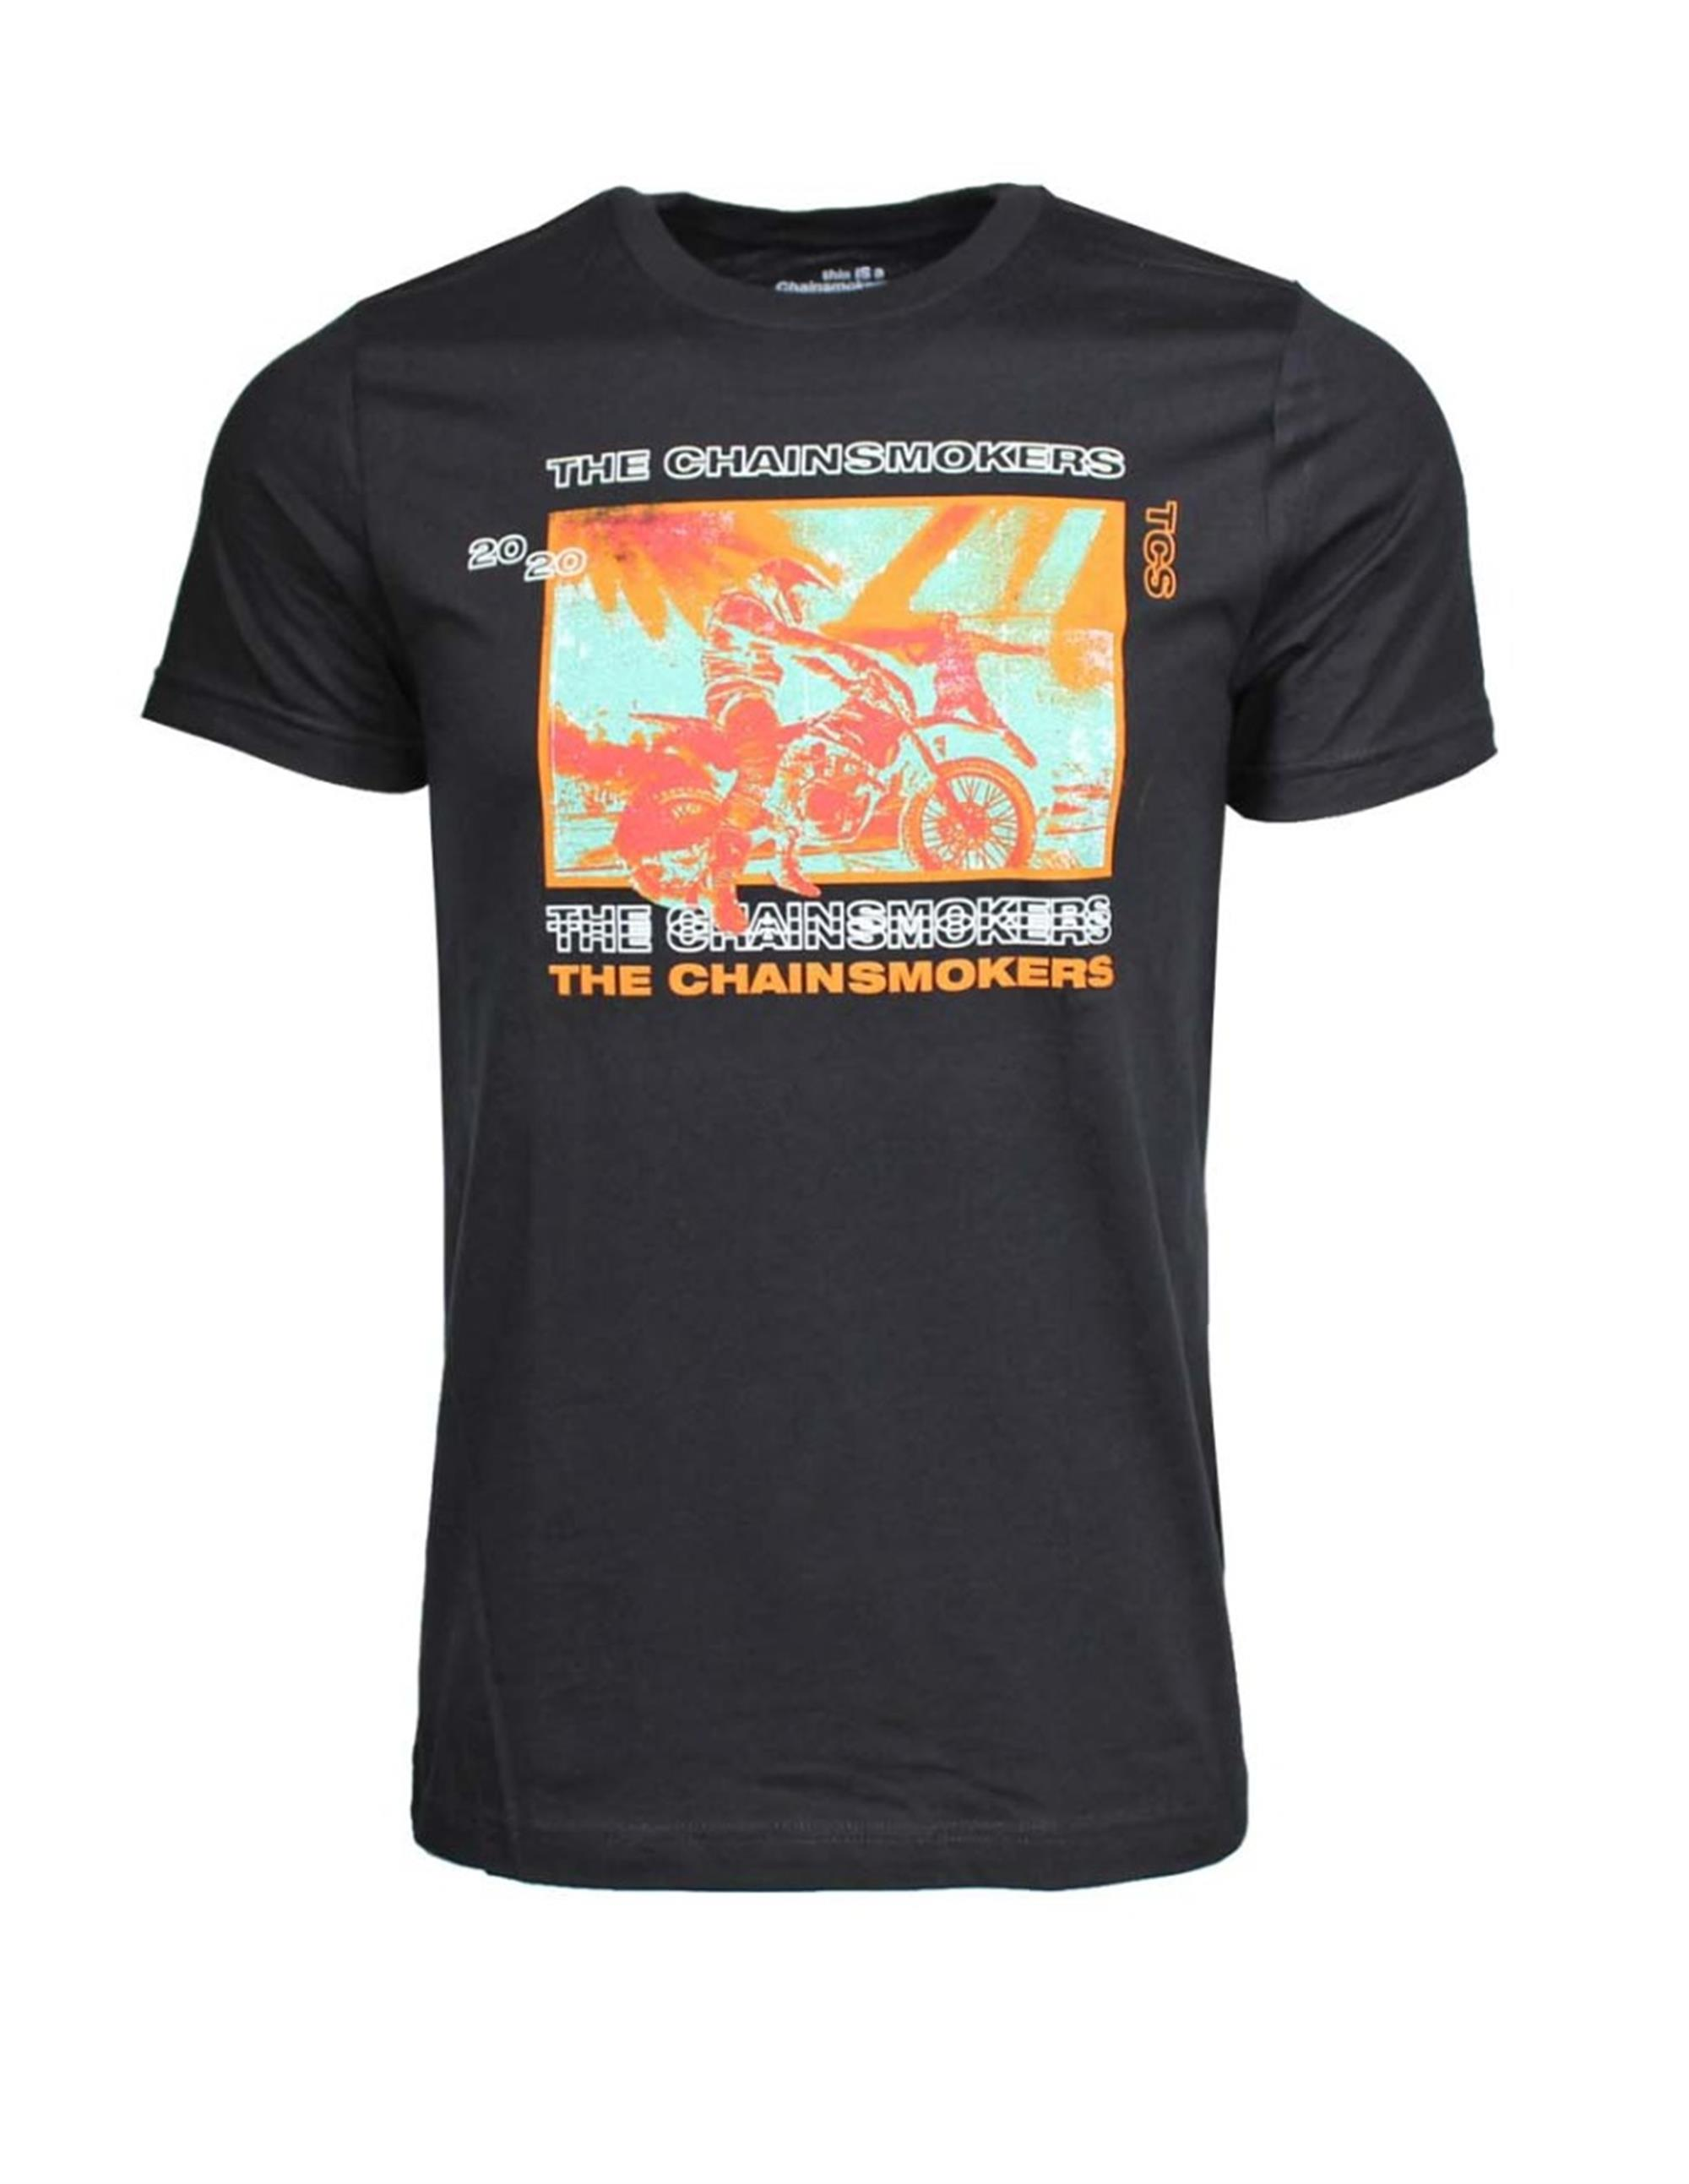 Chainsmokers Motorcycle T-Shirt